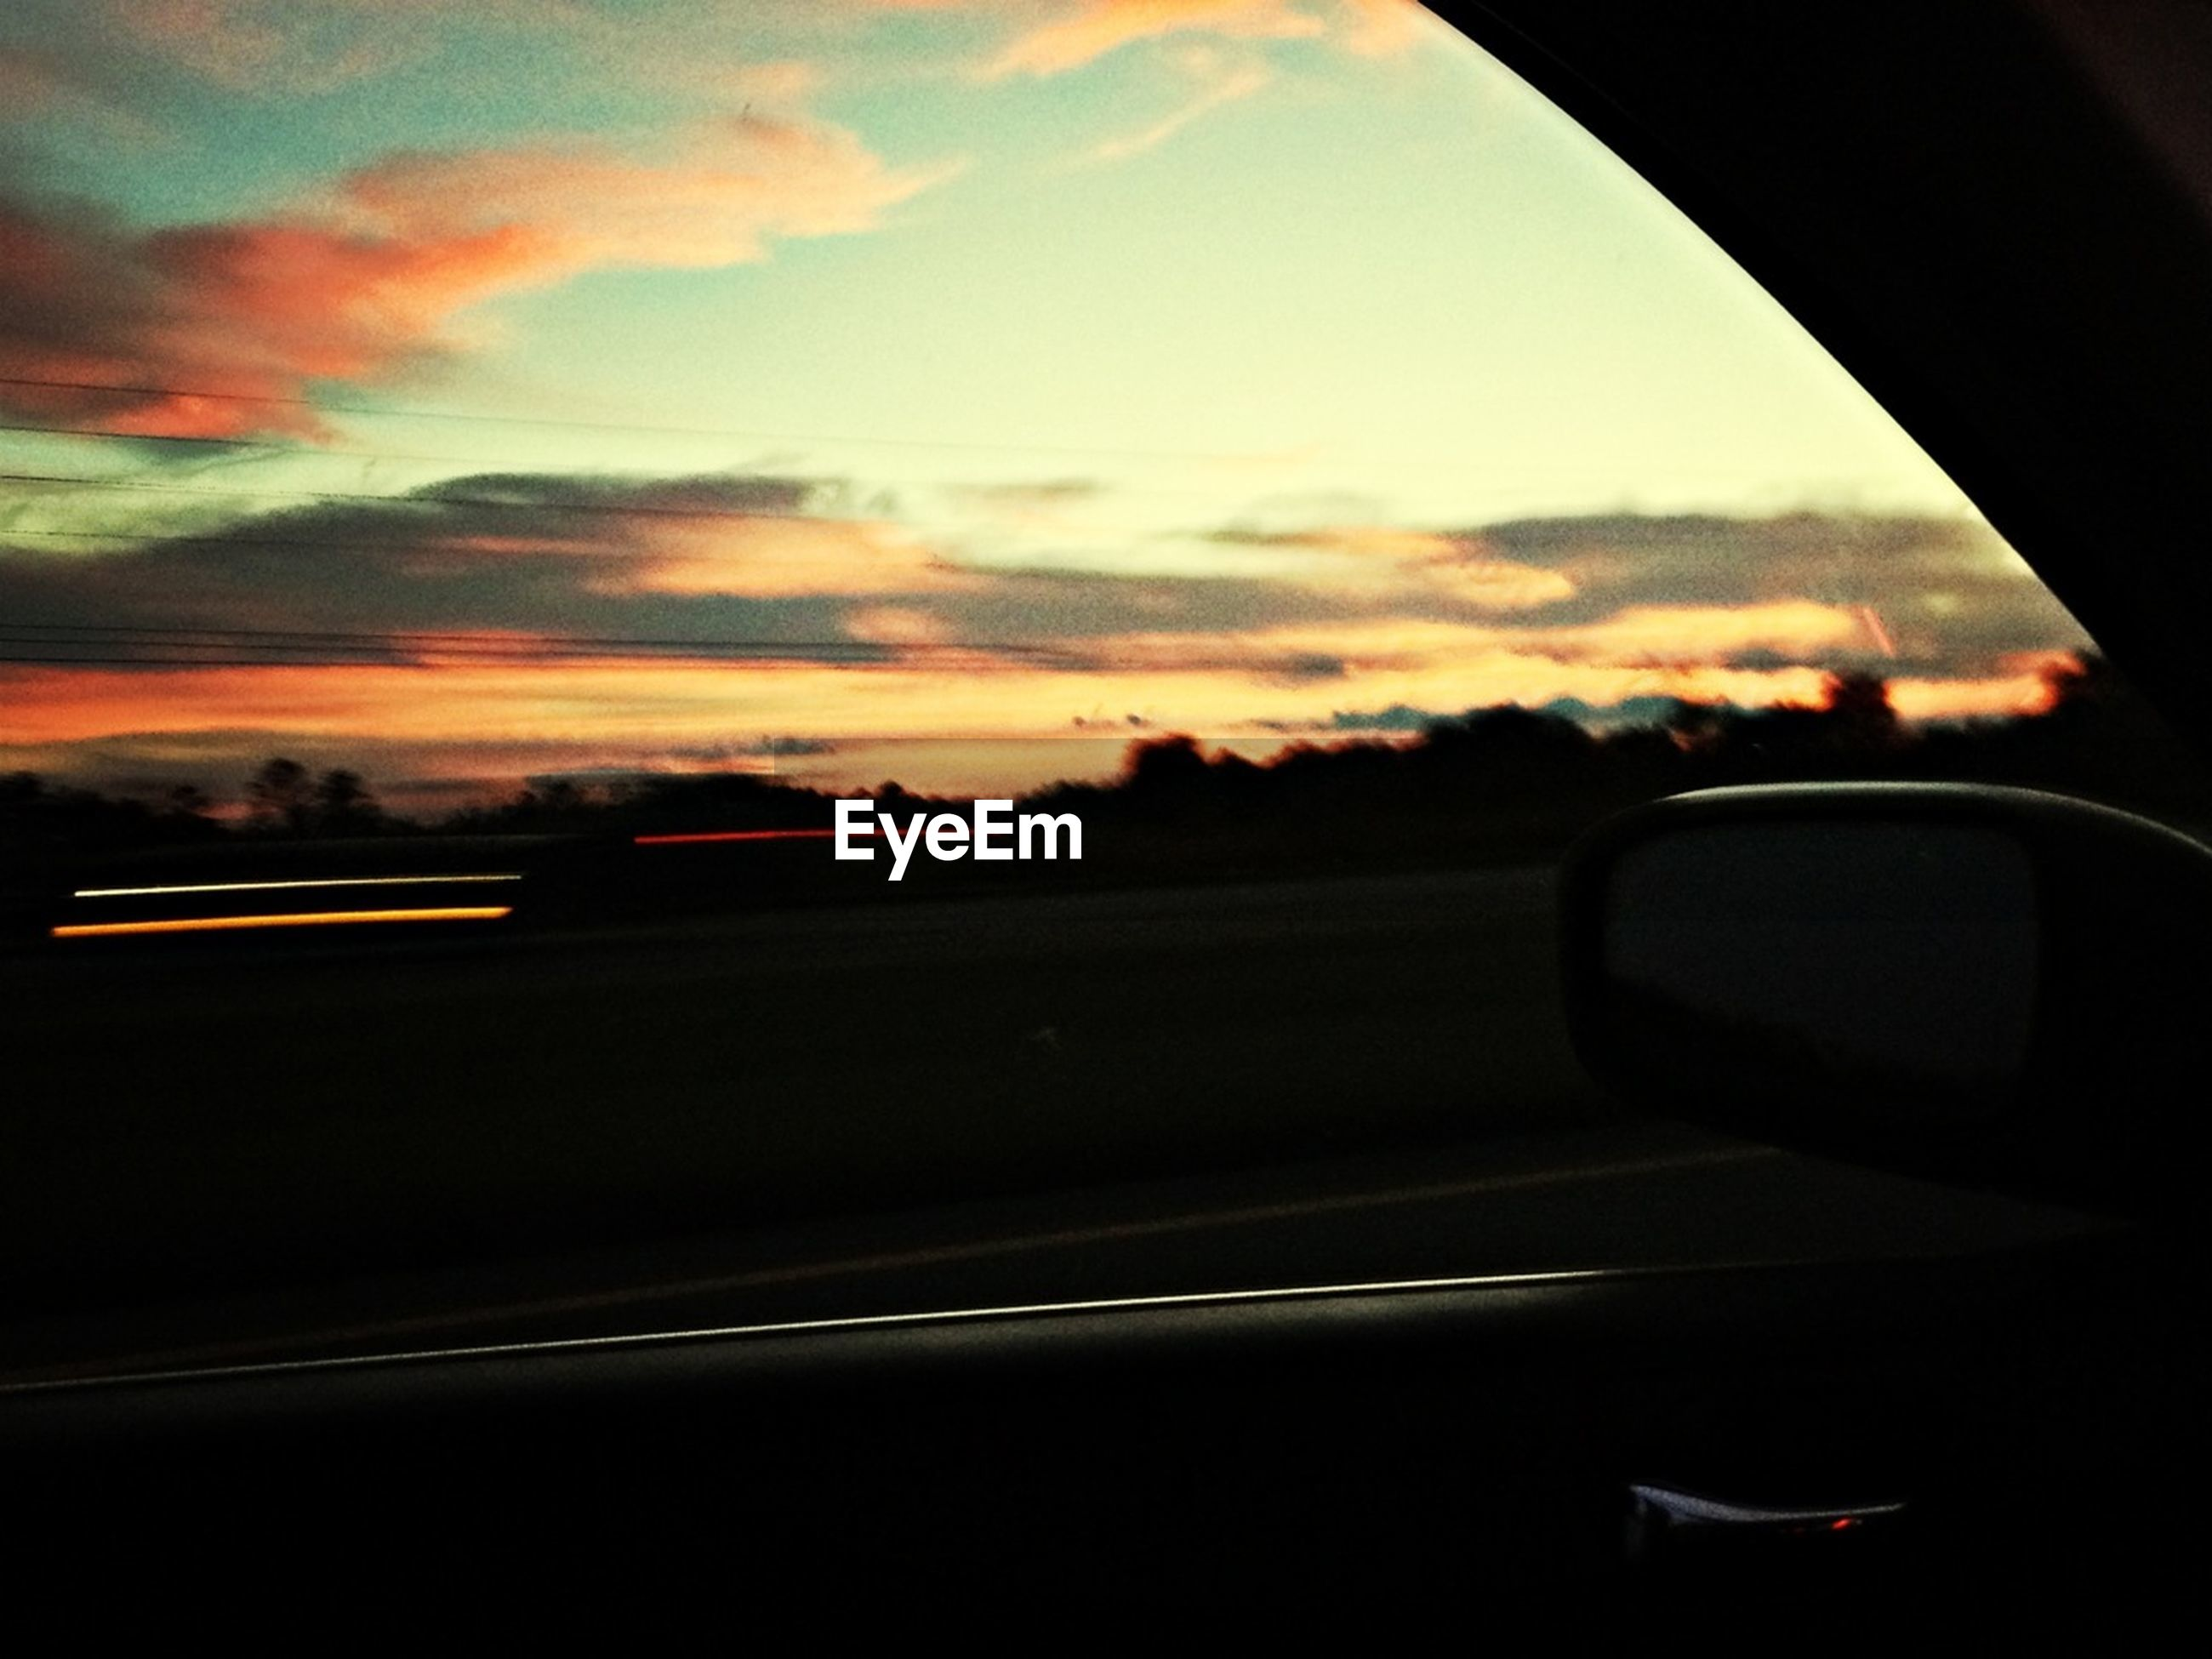 transportation, car, mode of transport, land vehicle, sunset, vehicle interior, car interior, sky, windshield, glass - material, transparent, road, side-view mirror, travel, silhouette, window, part of, road trip, reflection, orange color